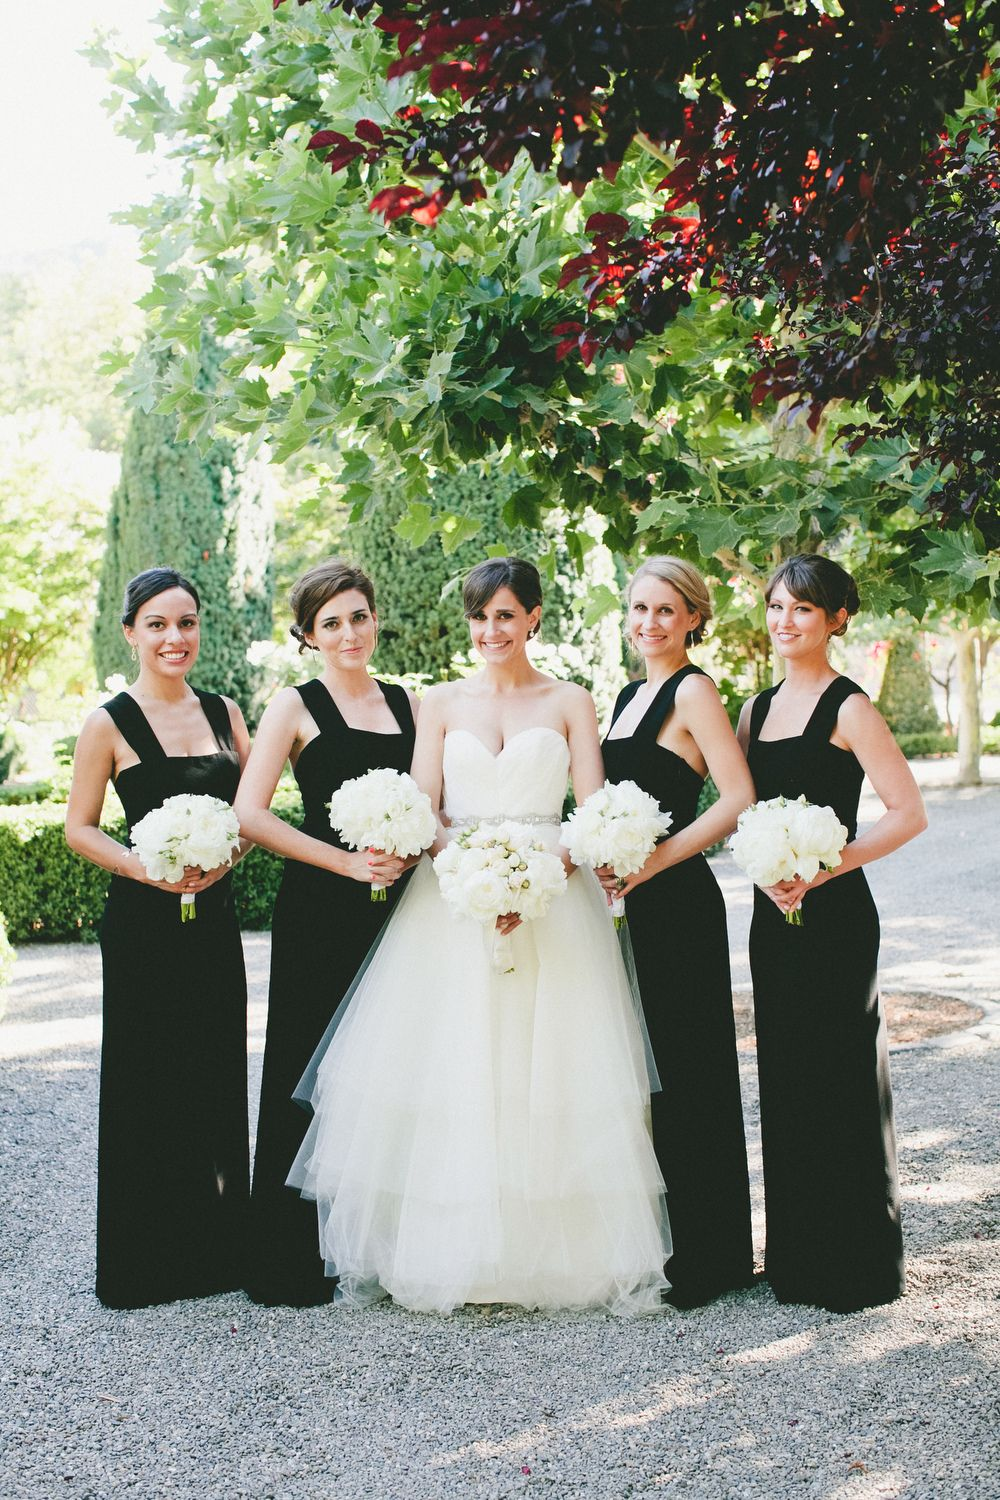 013abfdd9791 15 Times Bridesmaids Wore — and Rocked — Chic Black Dresses | Black ...